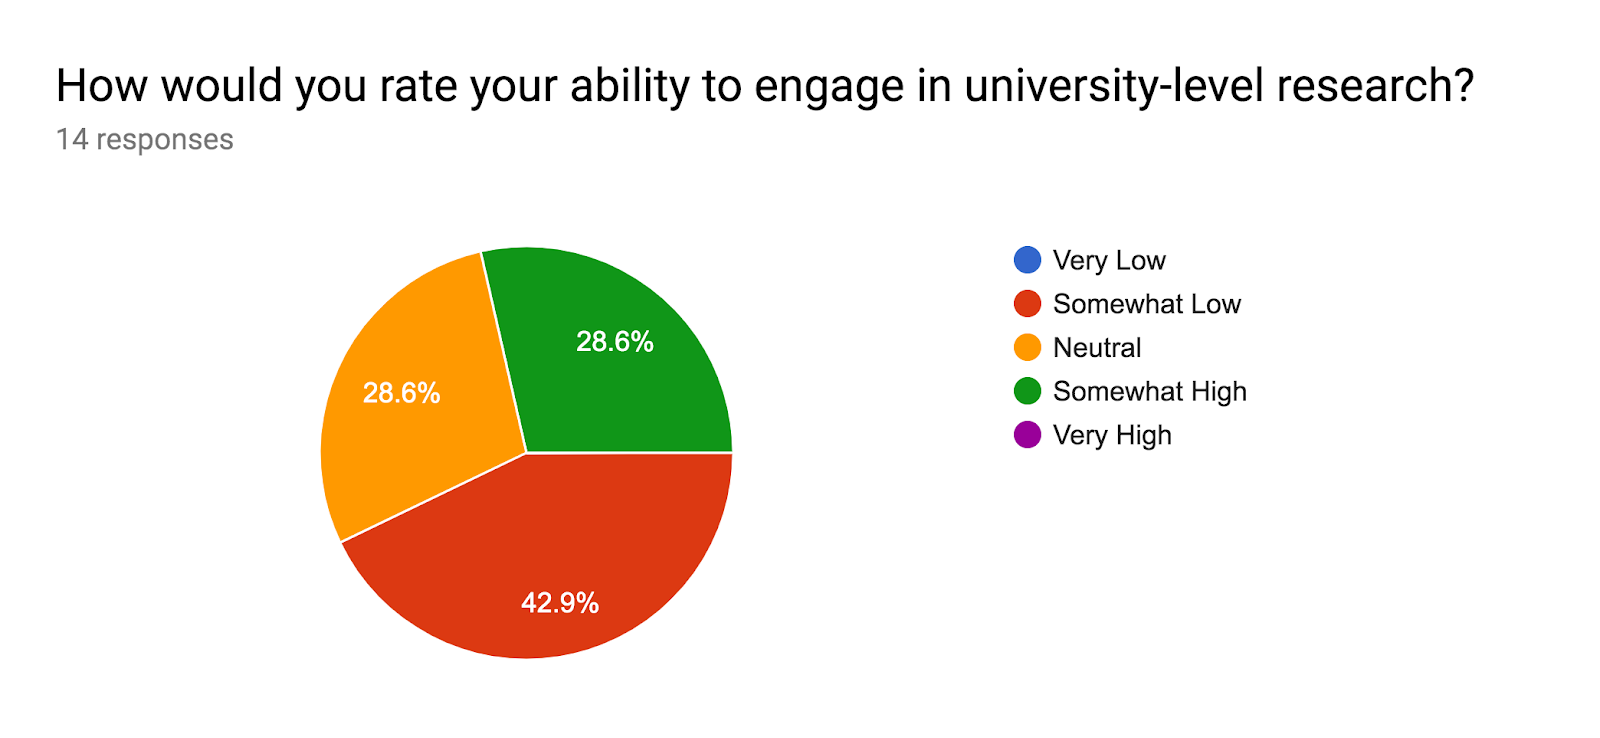 Forms response chart. Question title: How would you rate your ability to engage in university-level research?. Number of responses: 14 responses.